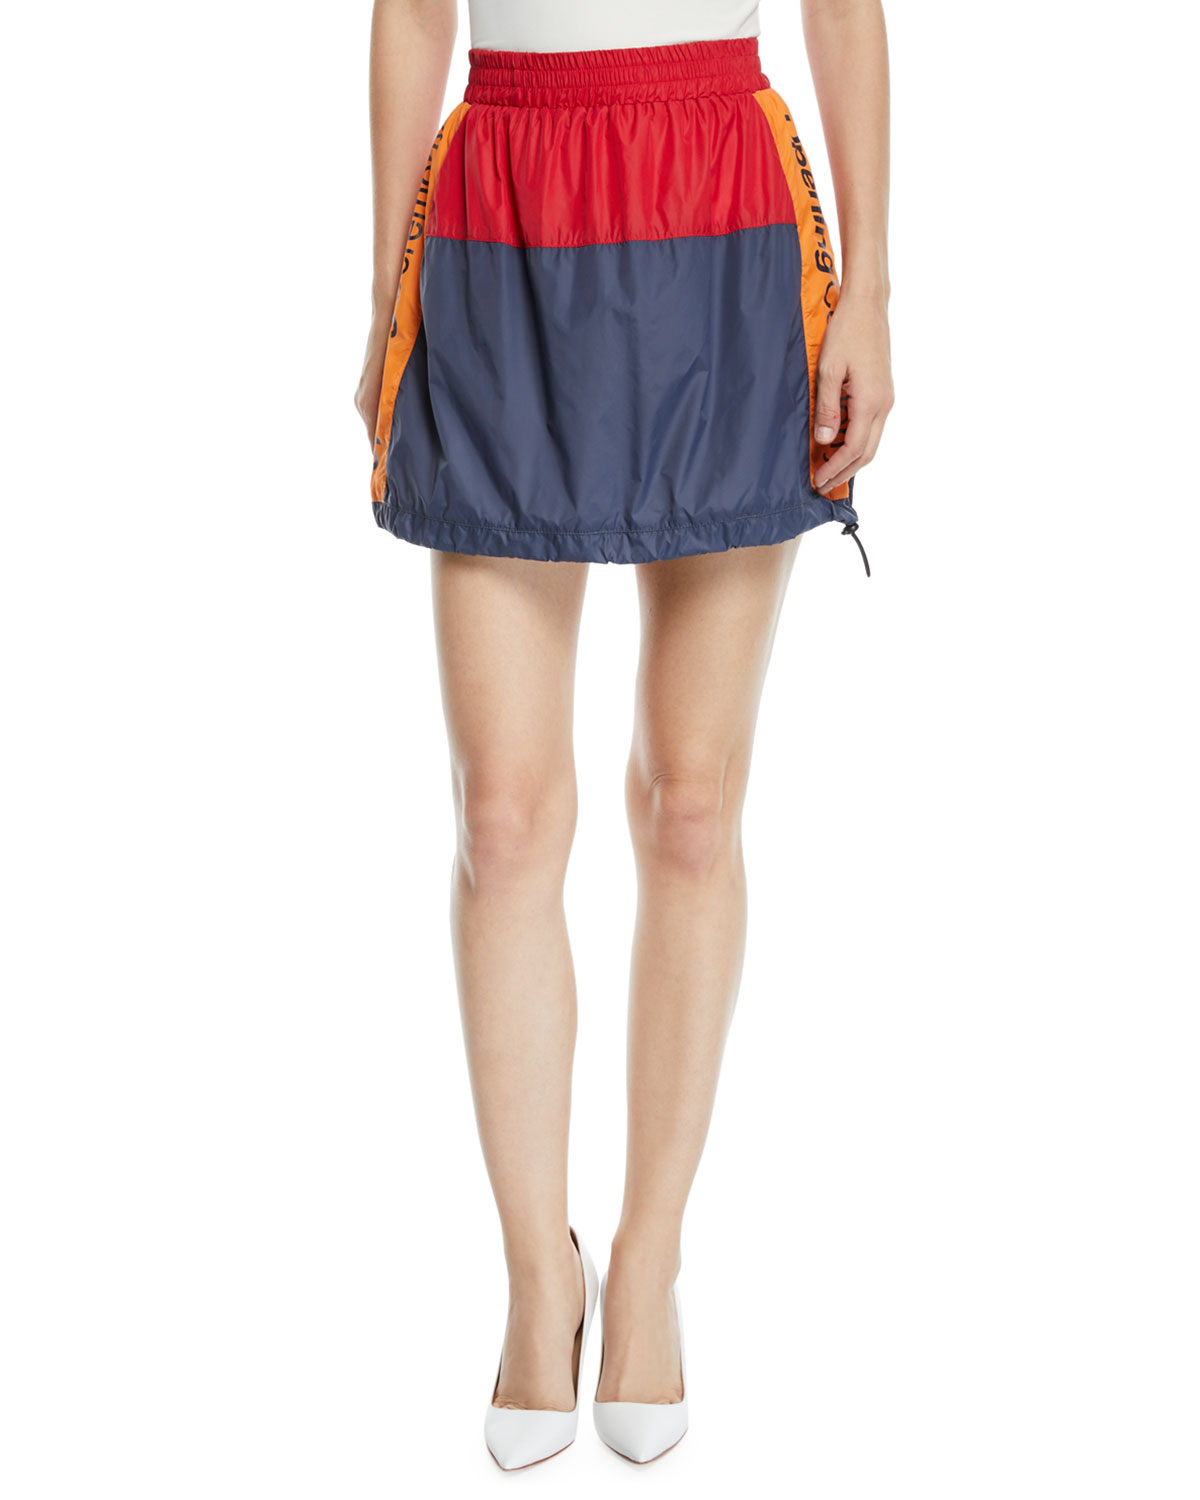 OPENING CEREMONY Warm-Up Colorblock Logo Mini Skirt in 4605 Colleg